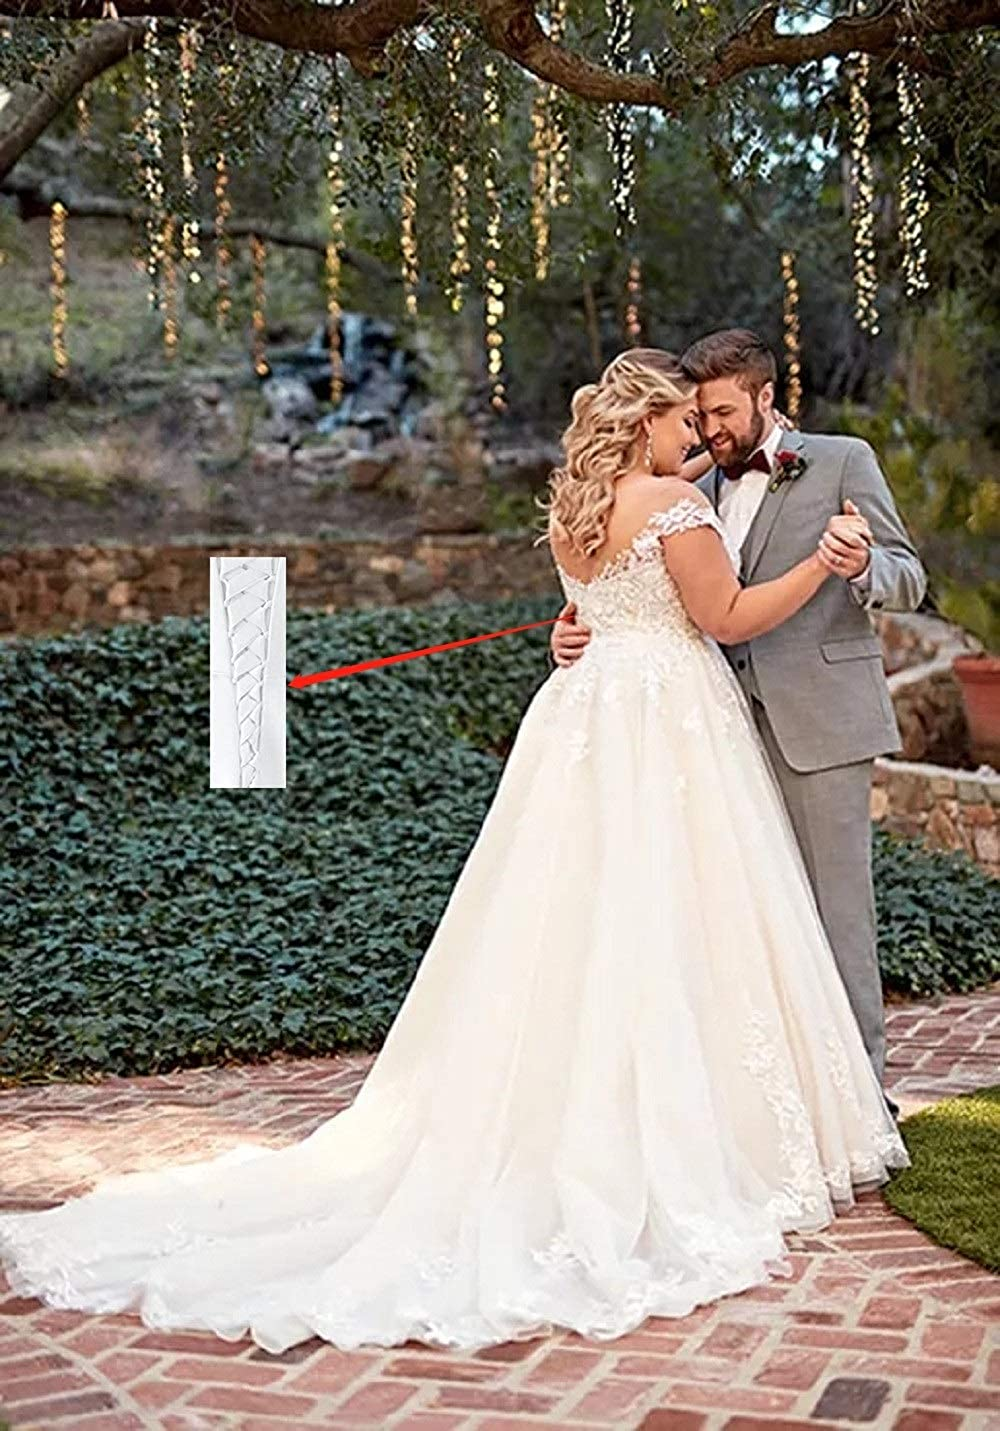 Clothfun Womens Illusion Long Sleeve V-Neck Lace Bridal Gowns Wedding Dresses for Bride 2019